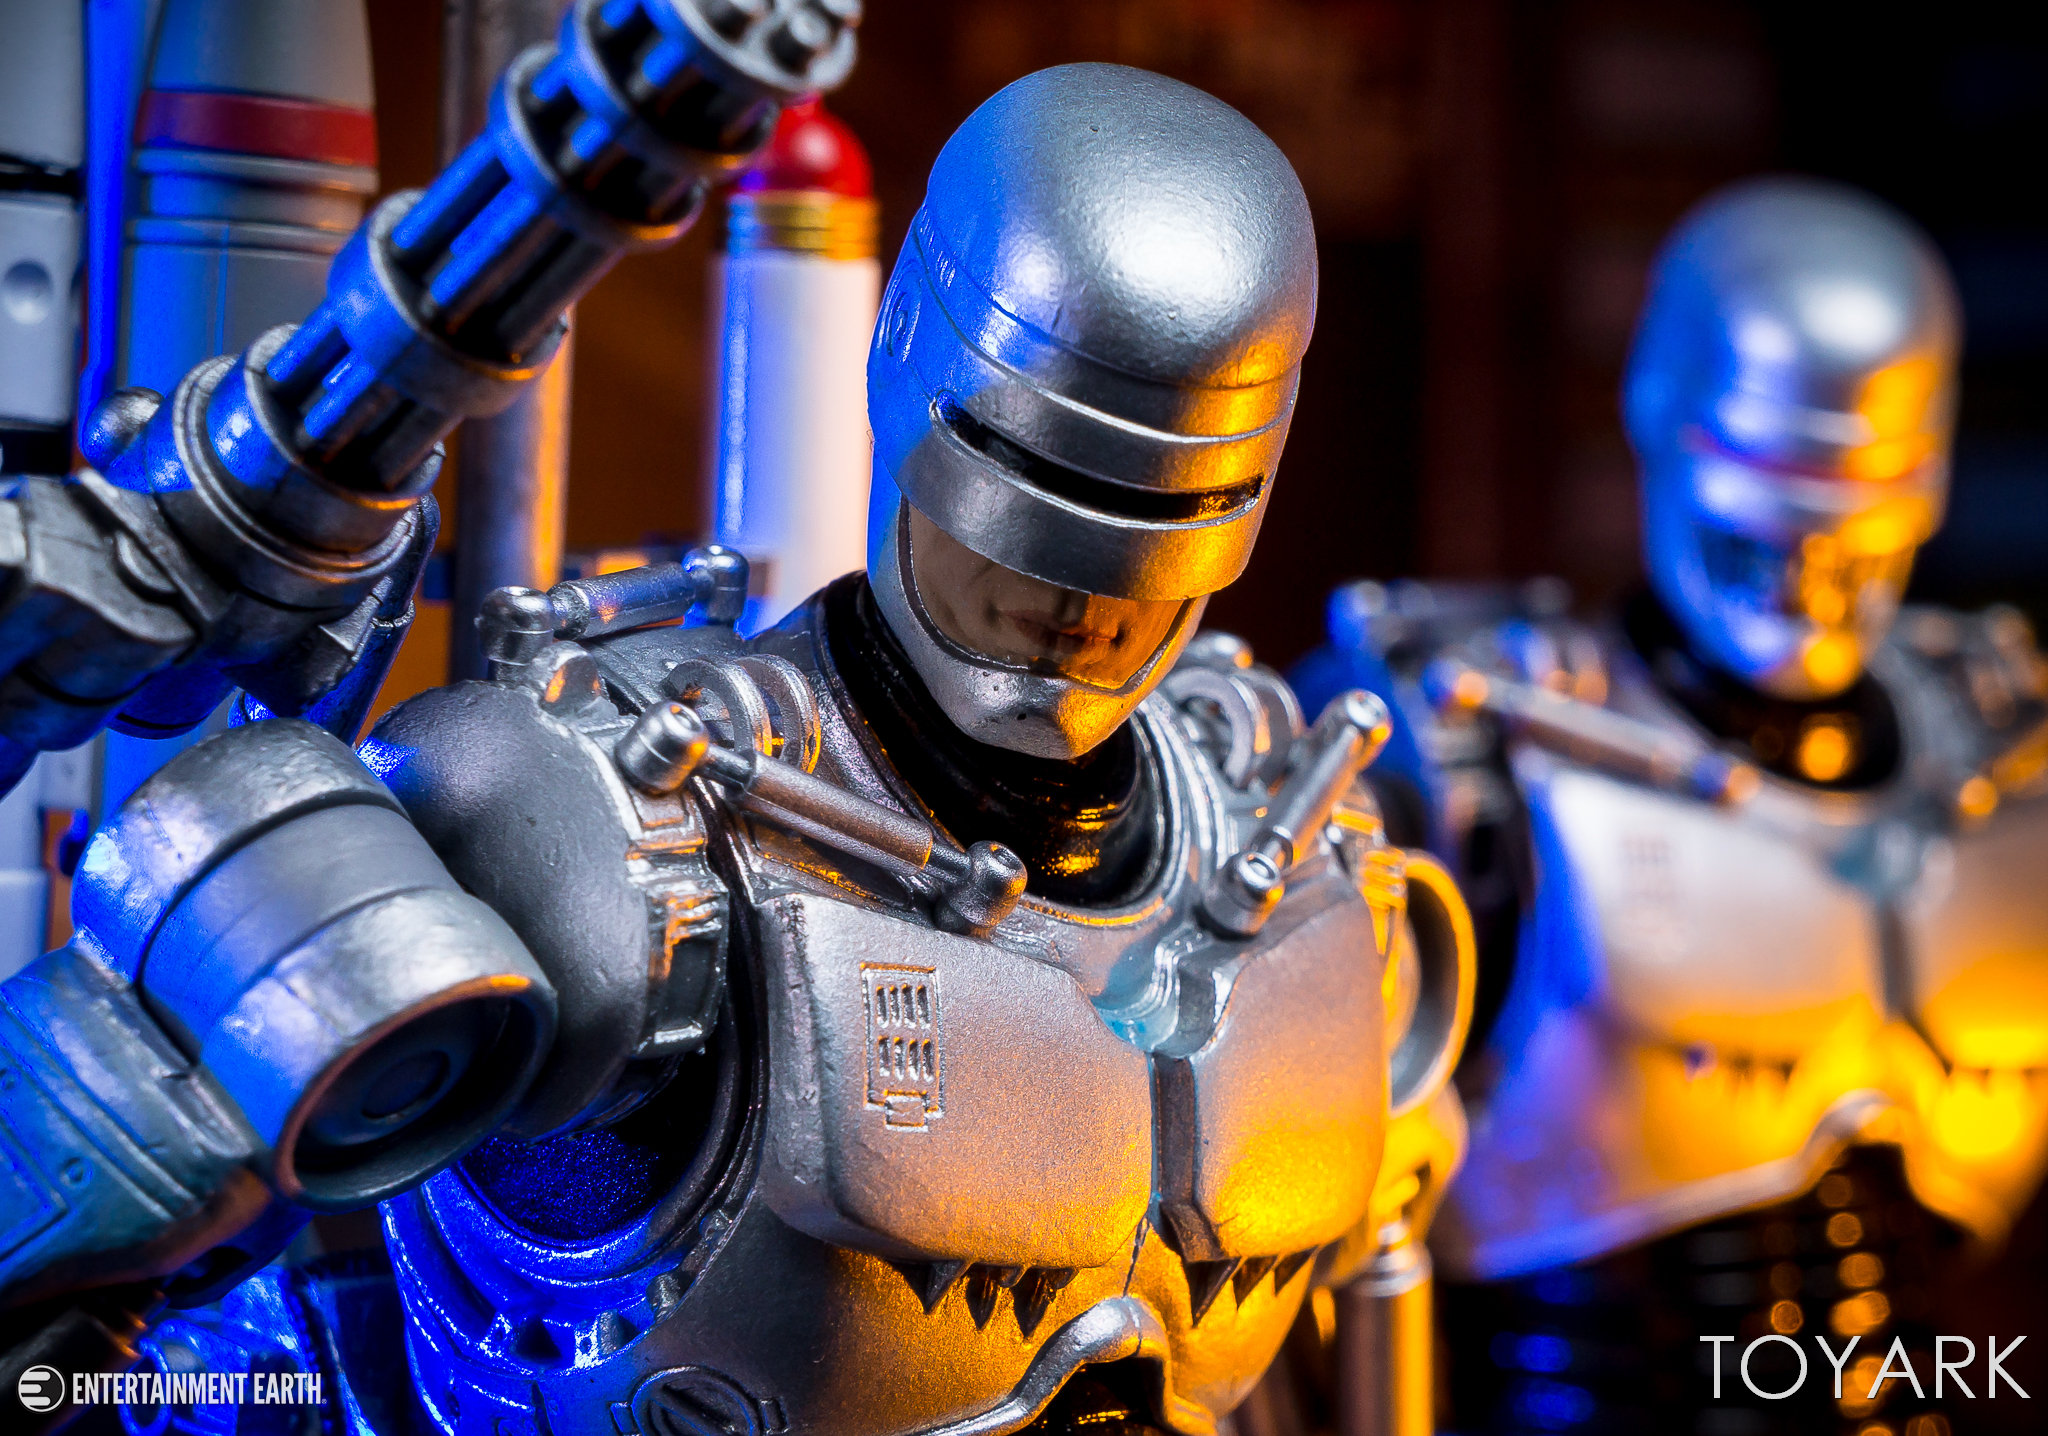 http://news.toyark.com/wp-content/uploads/sites/4/2018/02/NECA-Ult-Future-Robocop-021.jpg